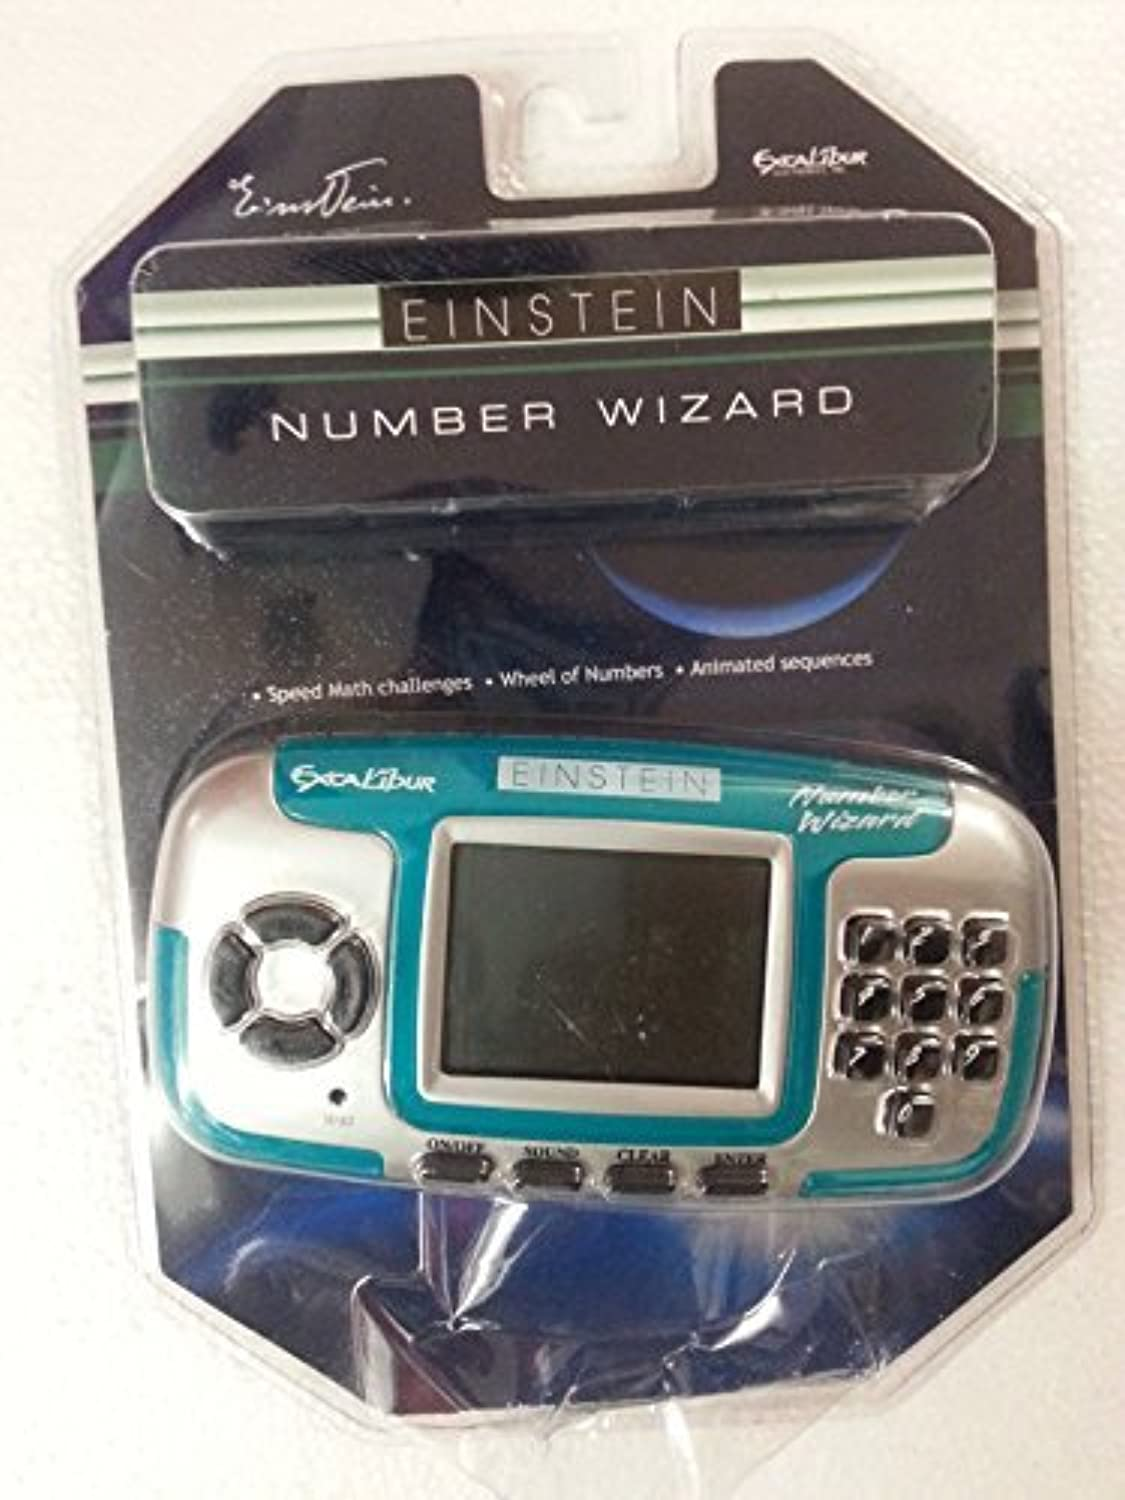 Einstein Number Wizard by Excalibur